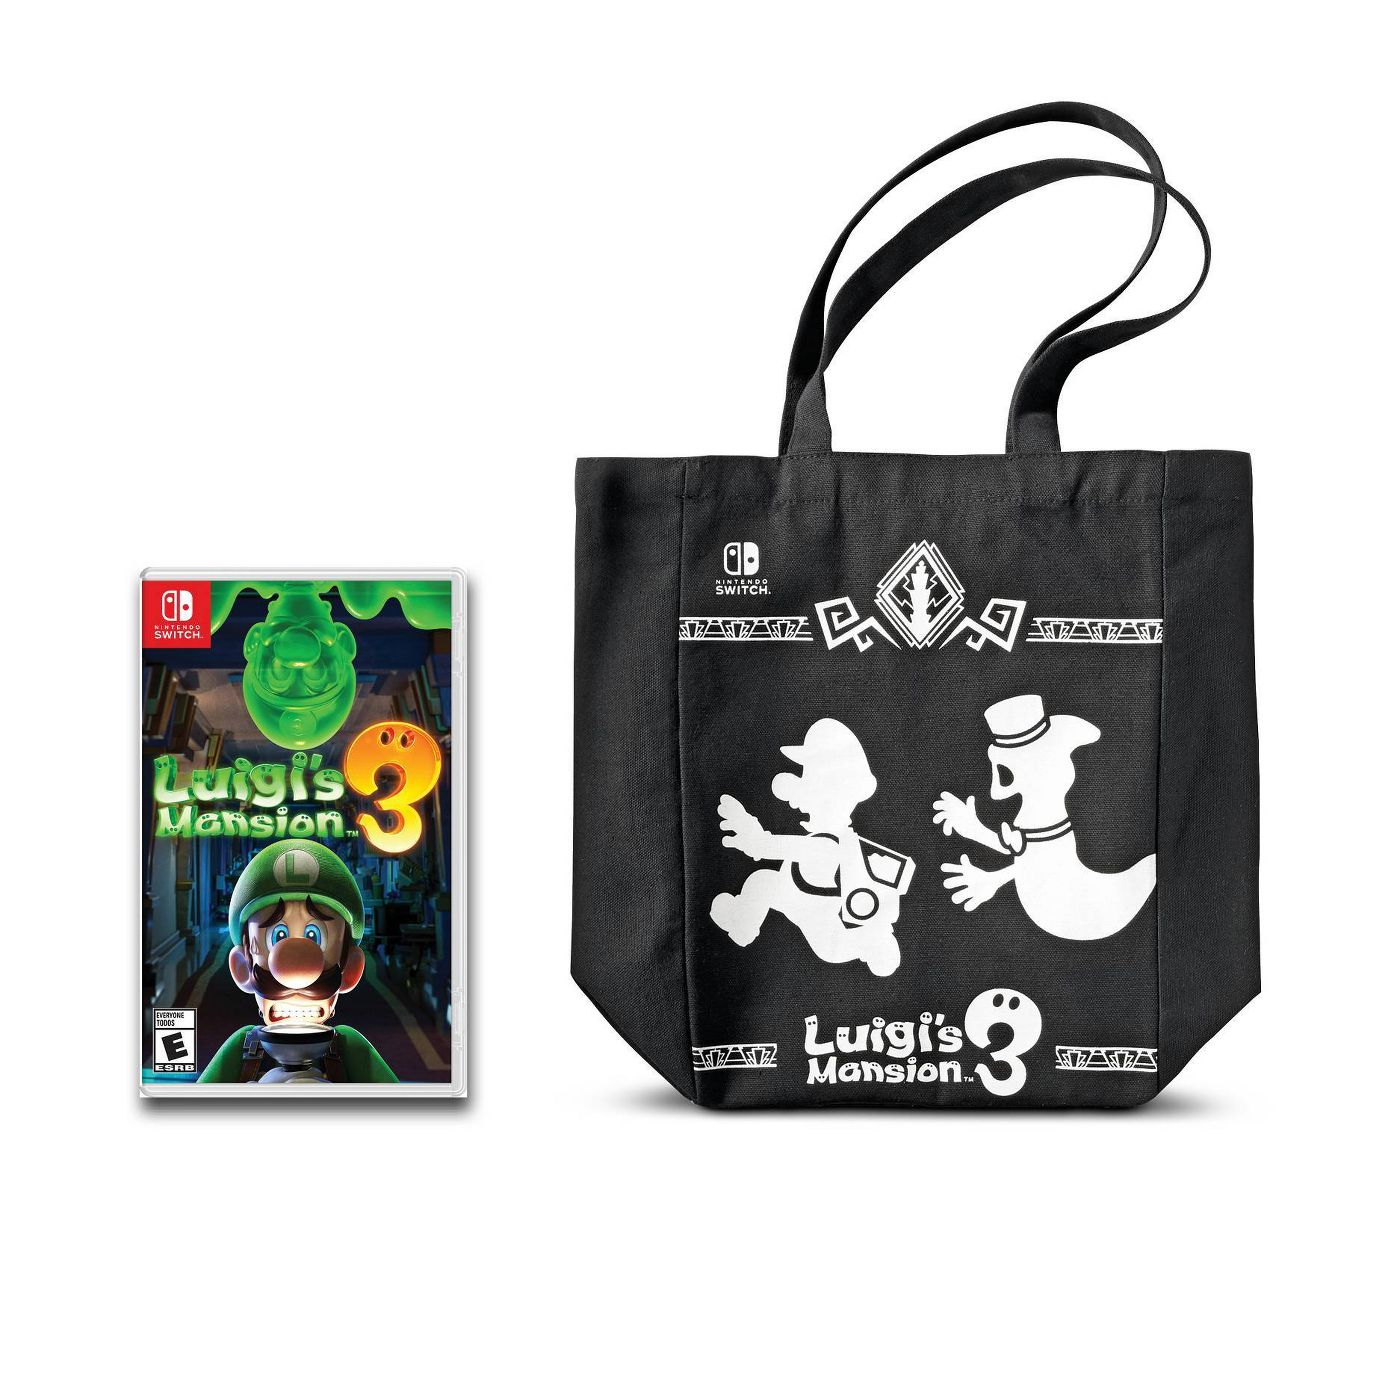 Luigi's Mansion 3 pre-order canvas bag target